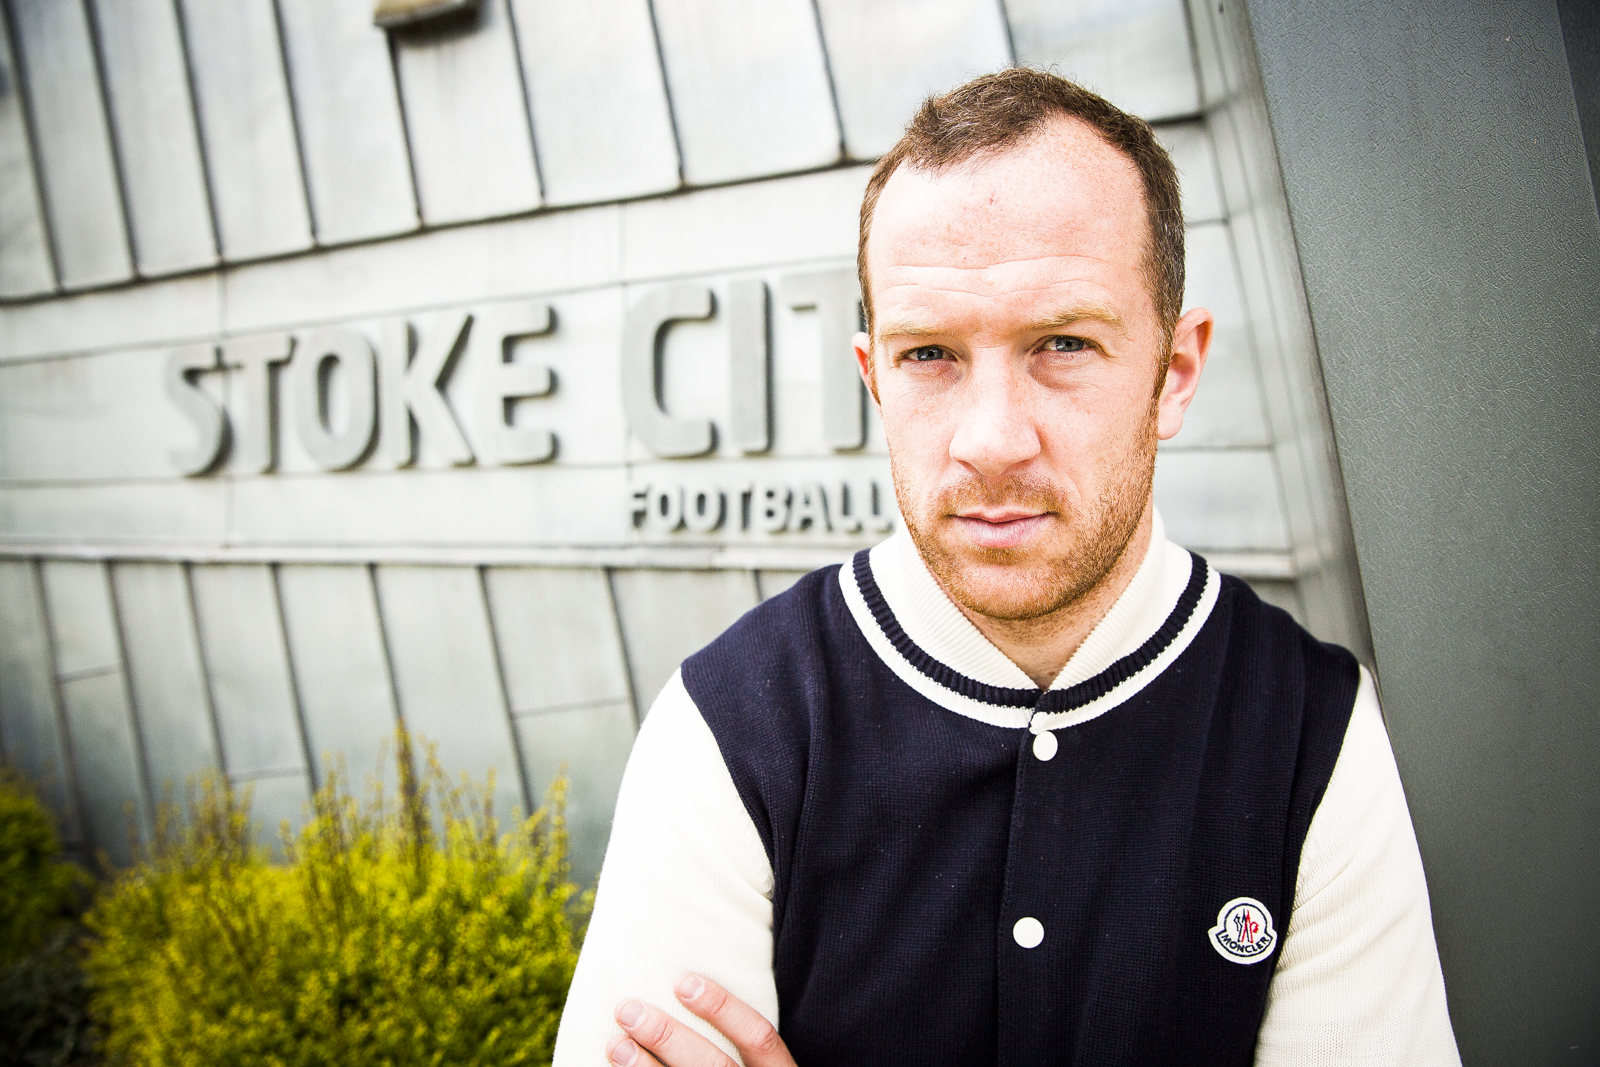 Charlie Adam, footballer for Stoke City FC, at the Clayton Wood Training Ground in Stoke-on-Trent